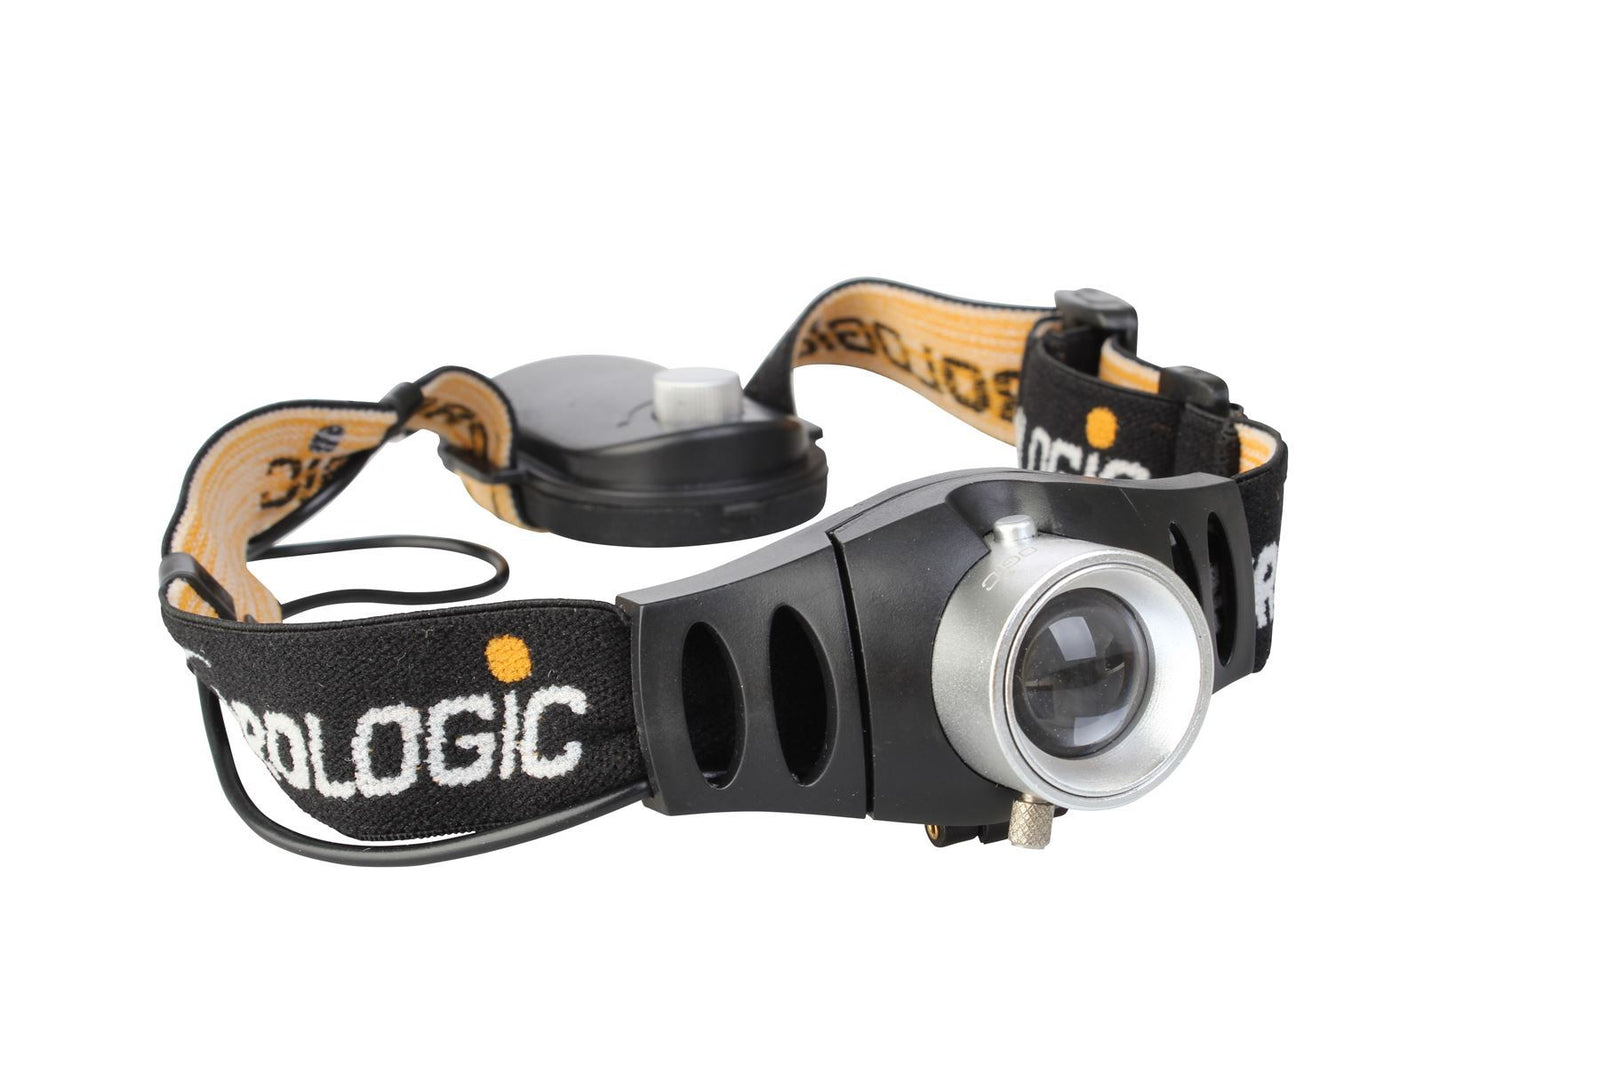 Prologic Lumiax Headlamp - reid outdoors